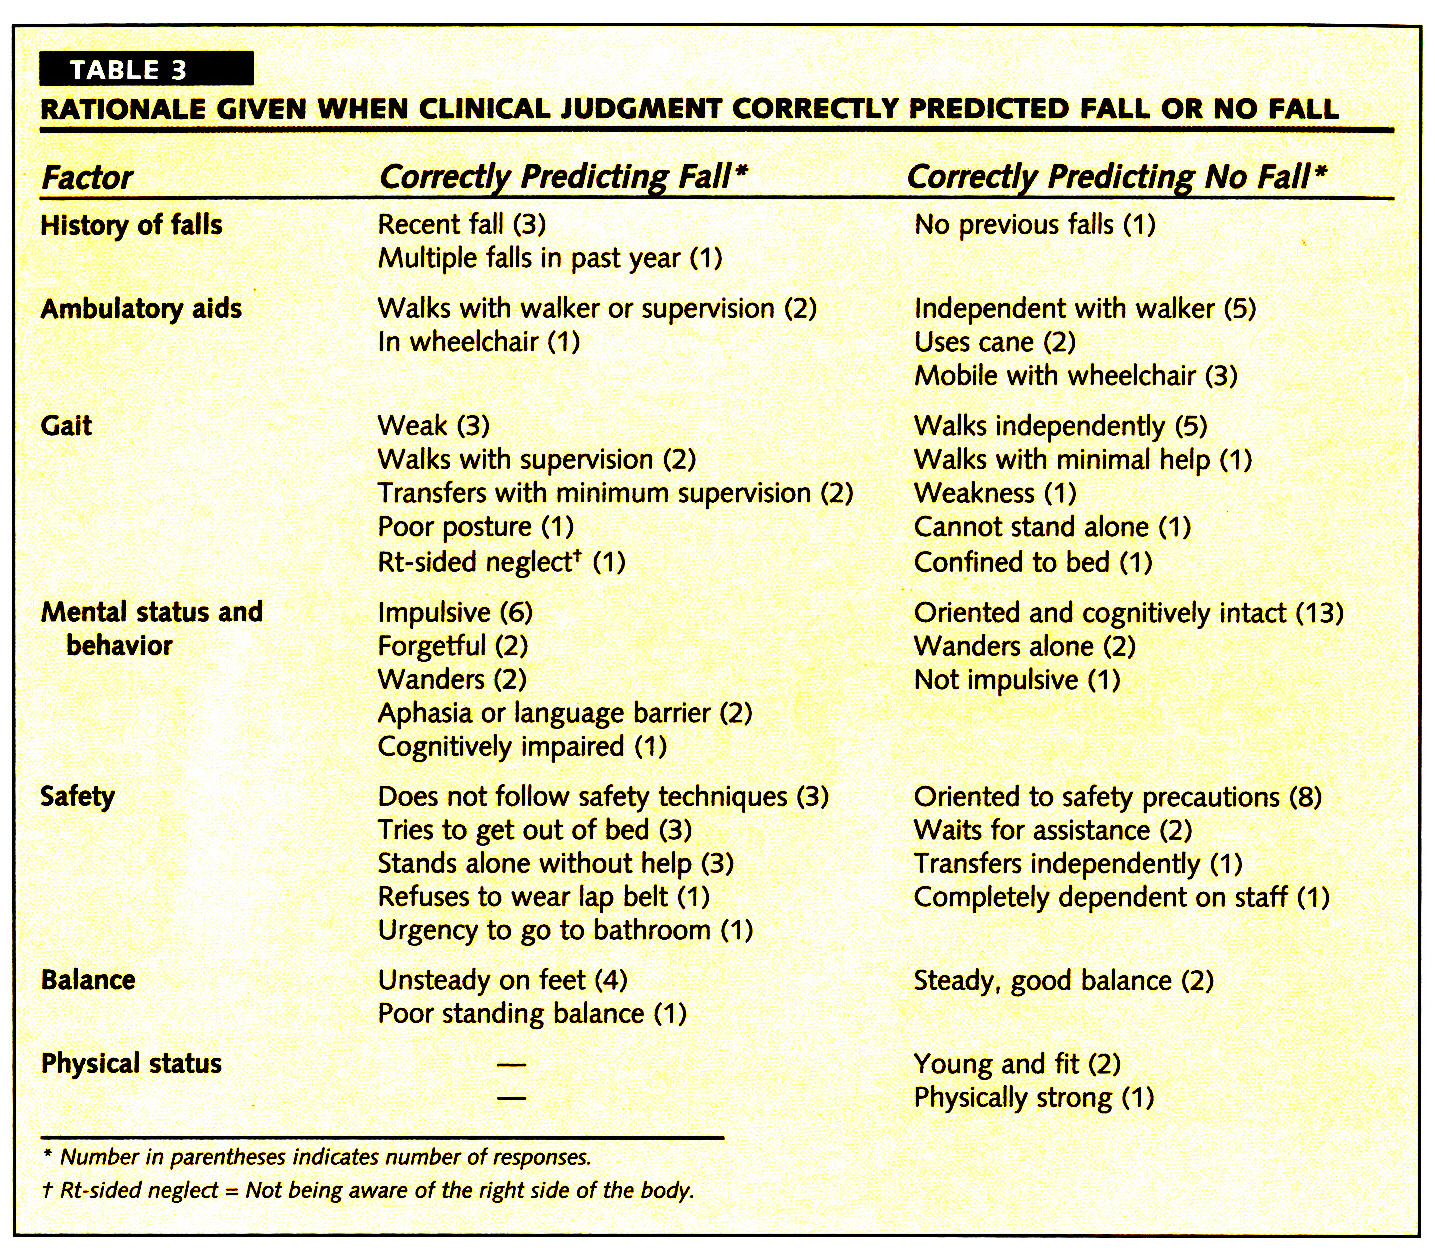 TABLE 3RATIONALE GIVEN WHEN CLINICAL JUDGMENT CORRECTLY PREDICTED FALL OR NO FALL